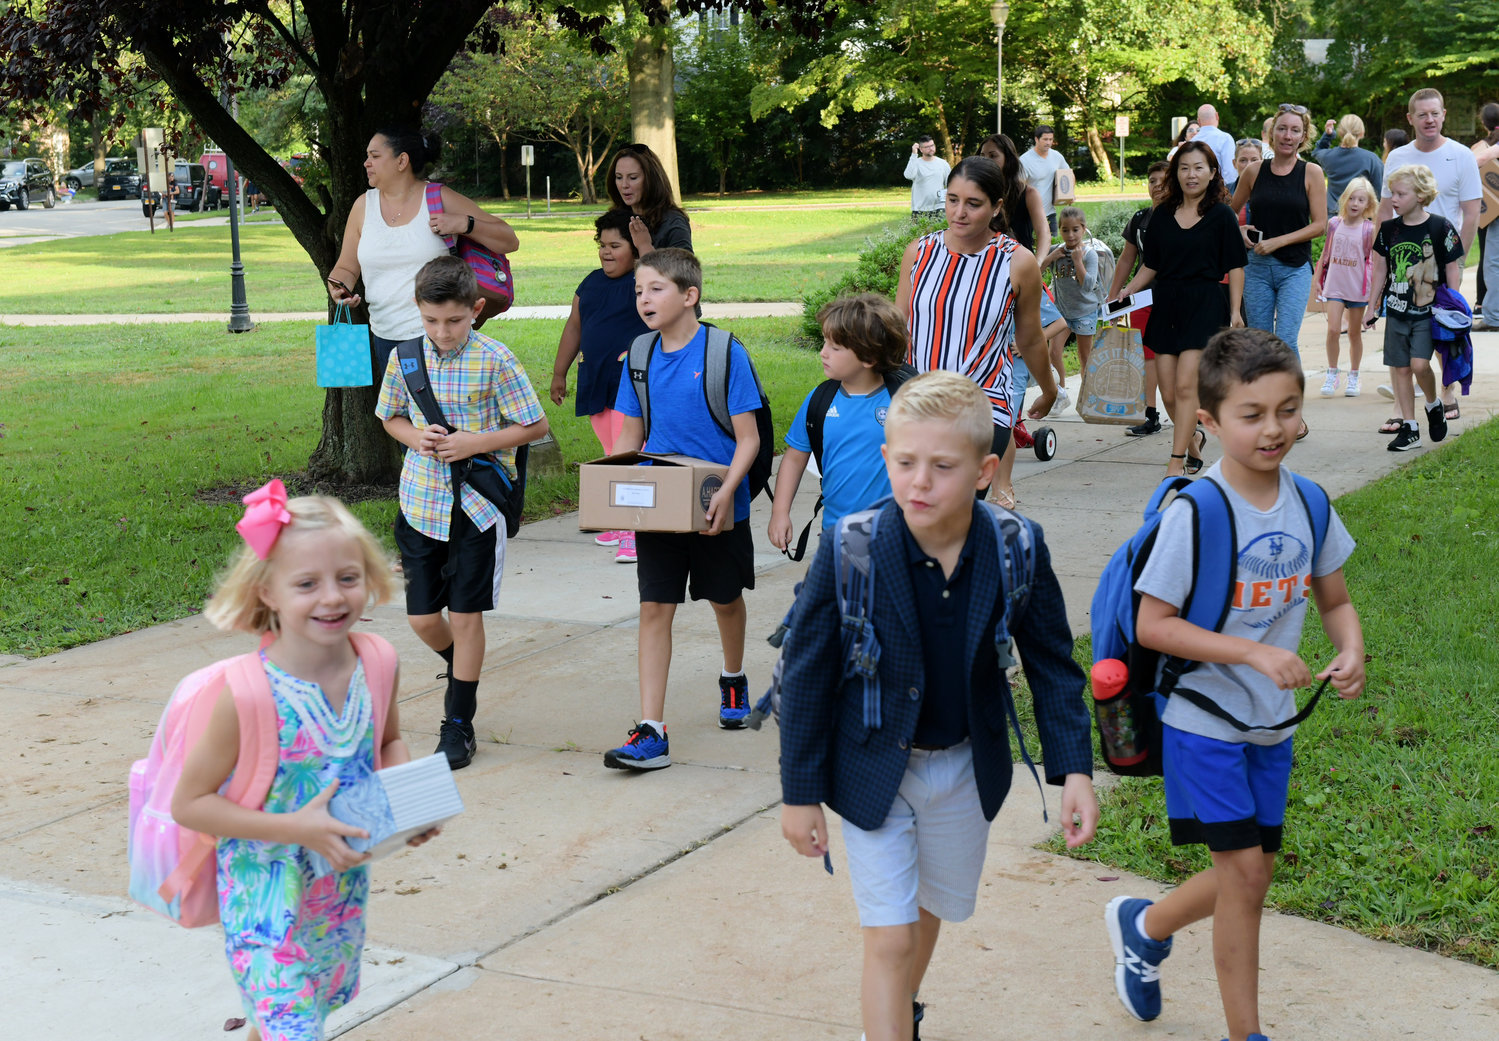 Kids and parents marched to the front door, excited to get the 2019-20 school year underway.